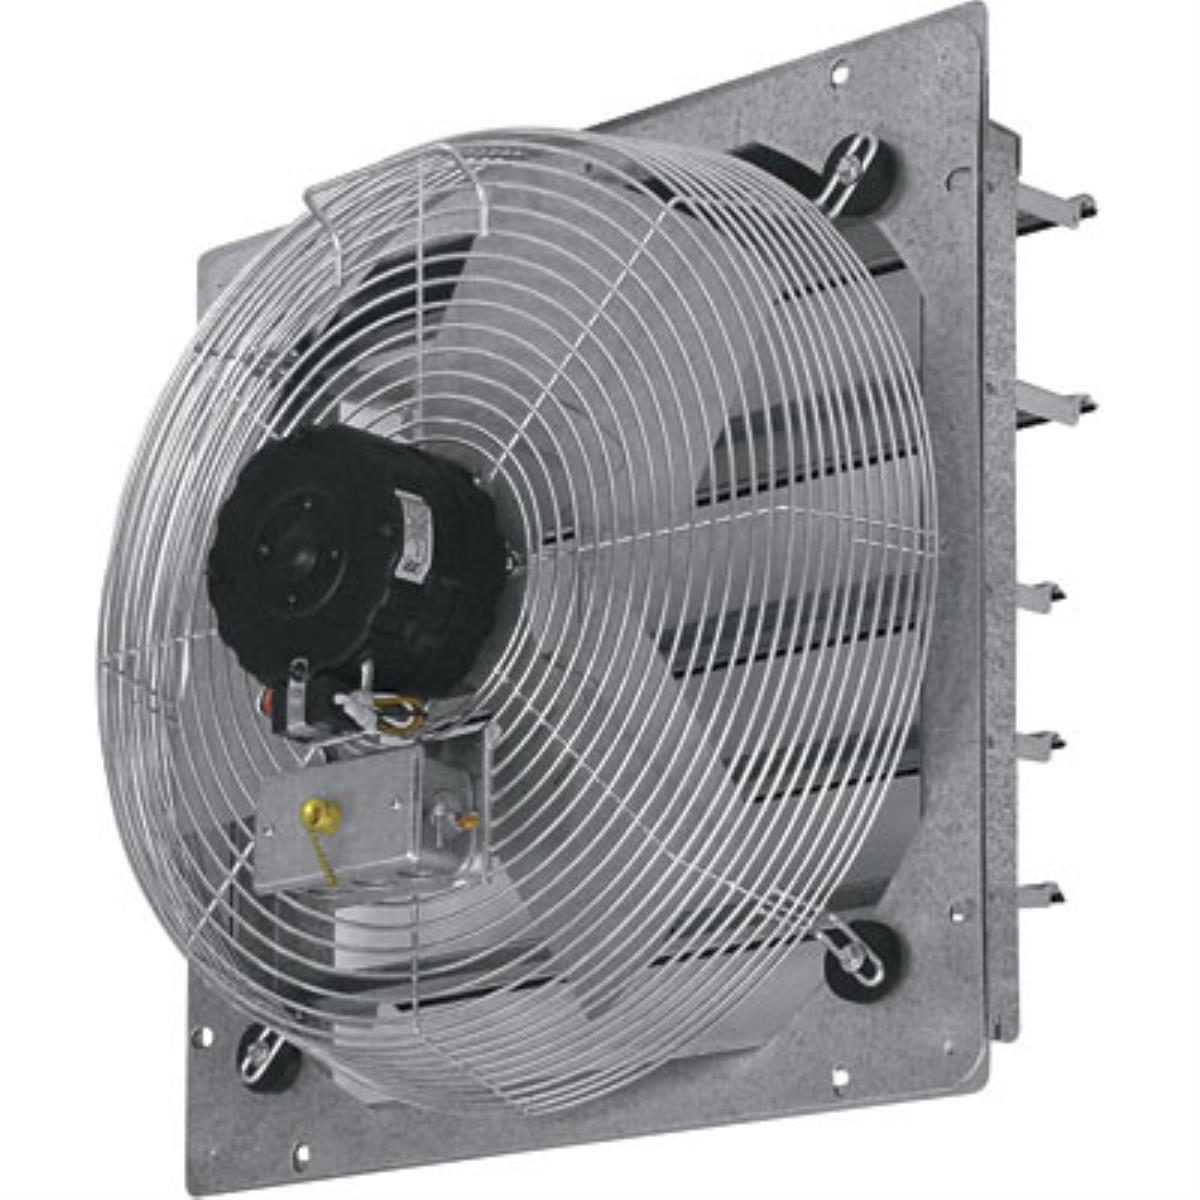 TPI CE20-DS 20 inch Shutter Mounted Direct Drive Exhaust Fan